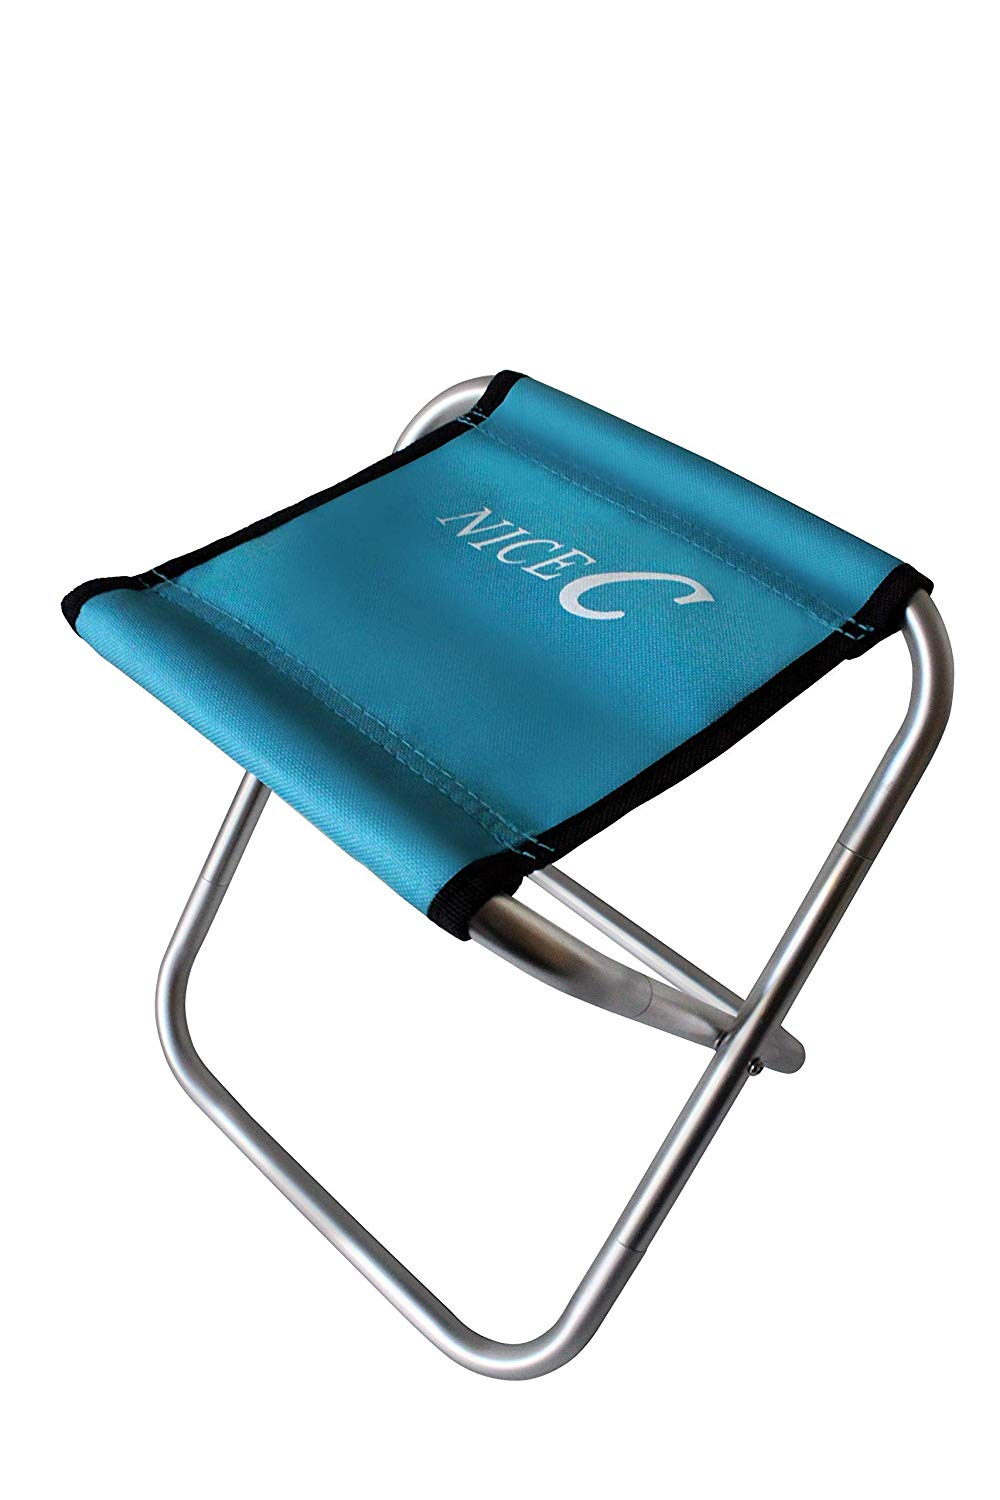 NiceC Portable Folding Stool Ultralight Camping Chair with Carry